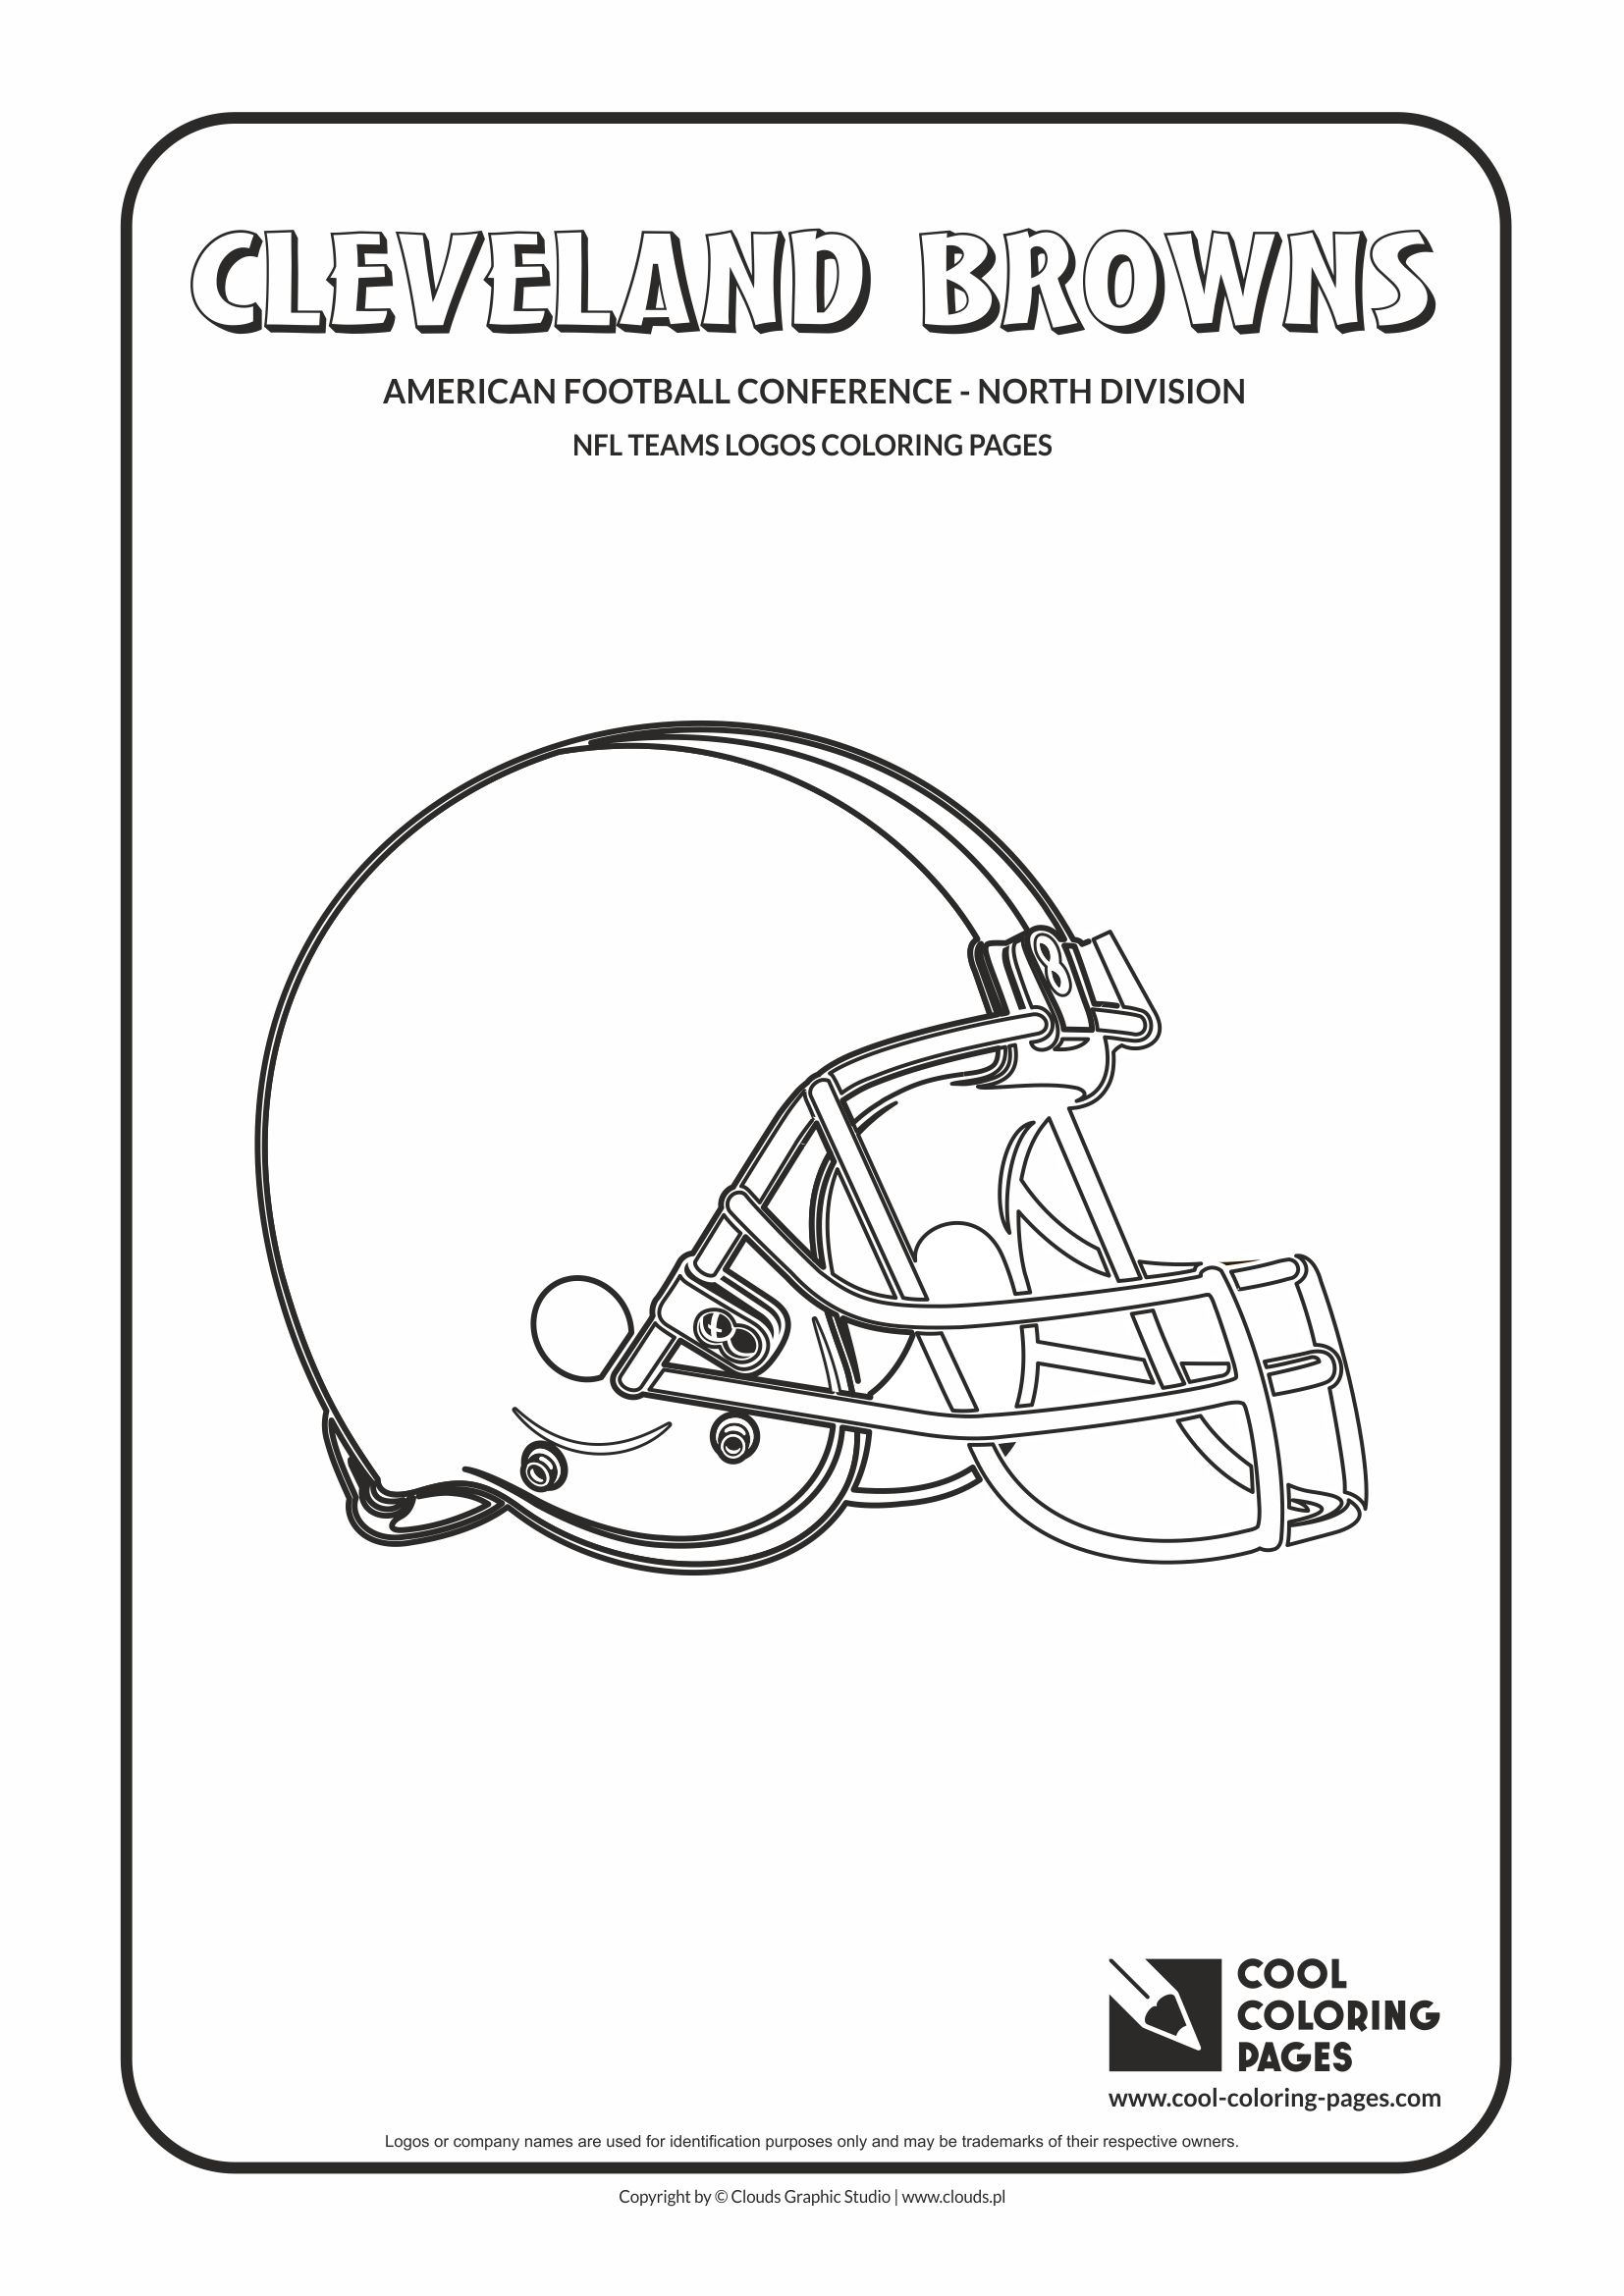 Cool Coloring Pages - NFL American Football Clubs Logos - American Football Conference - North Division / Cleveland Browns logo / Coloring page with Cleveland Browns logo